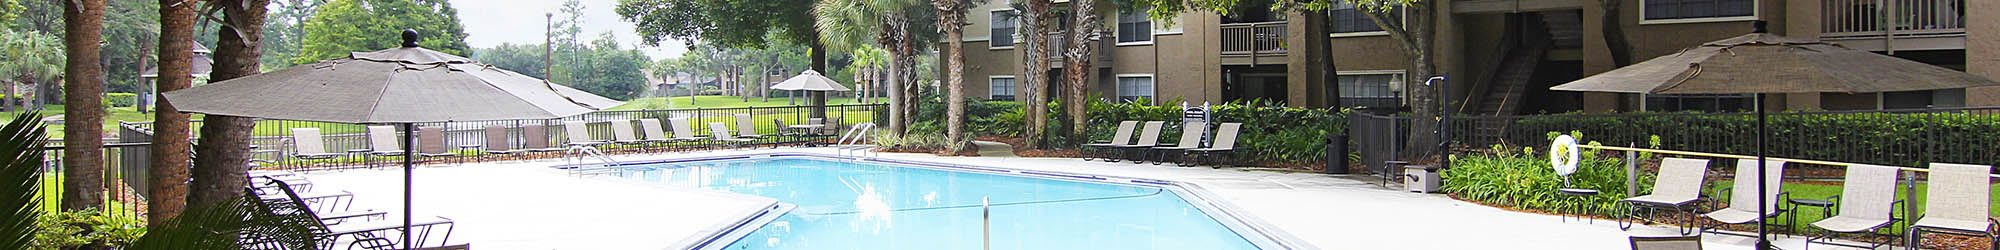 Pet-friendly apartments in Jacksonville